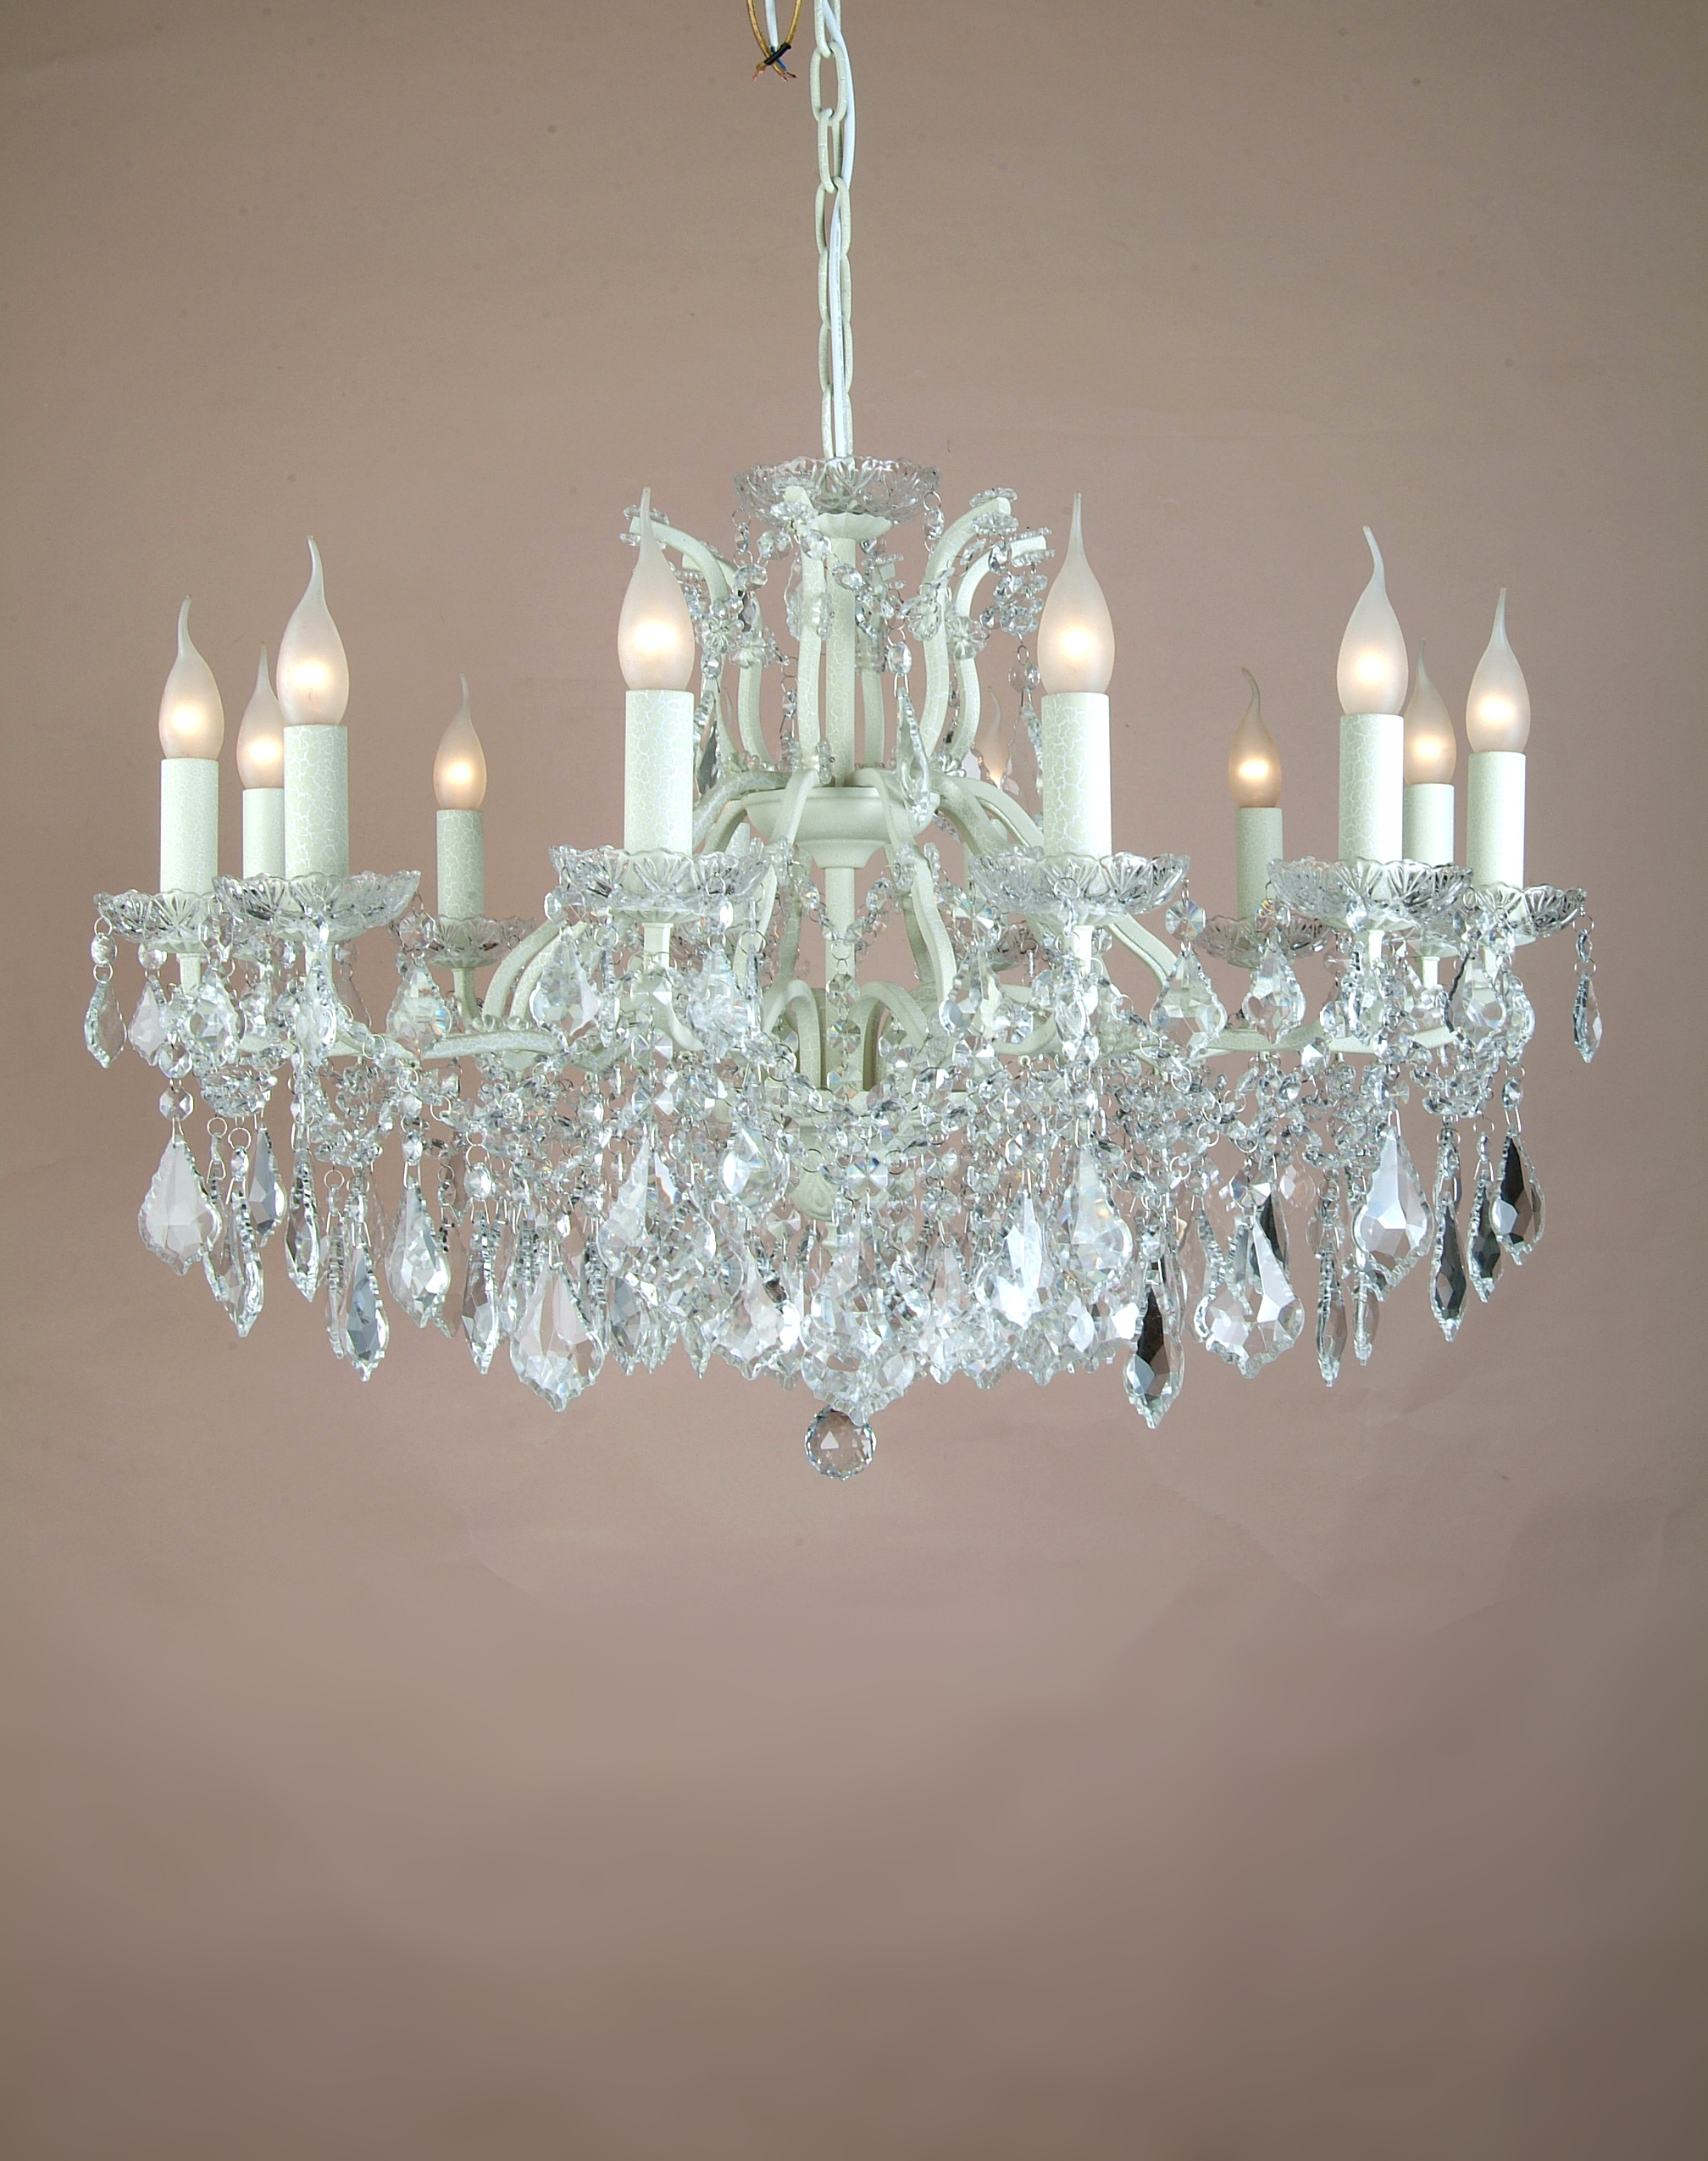 Popular Photo of Glass Chandeliers